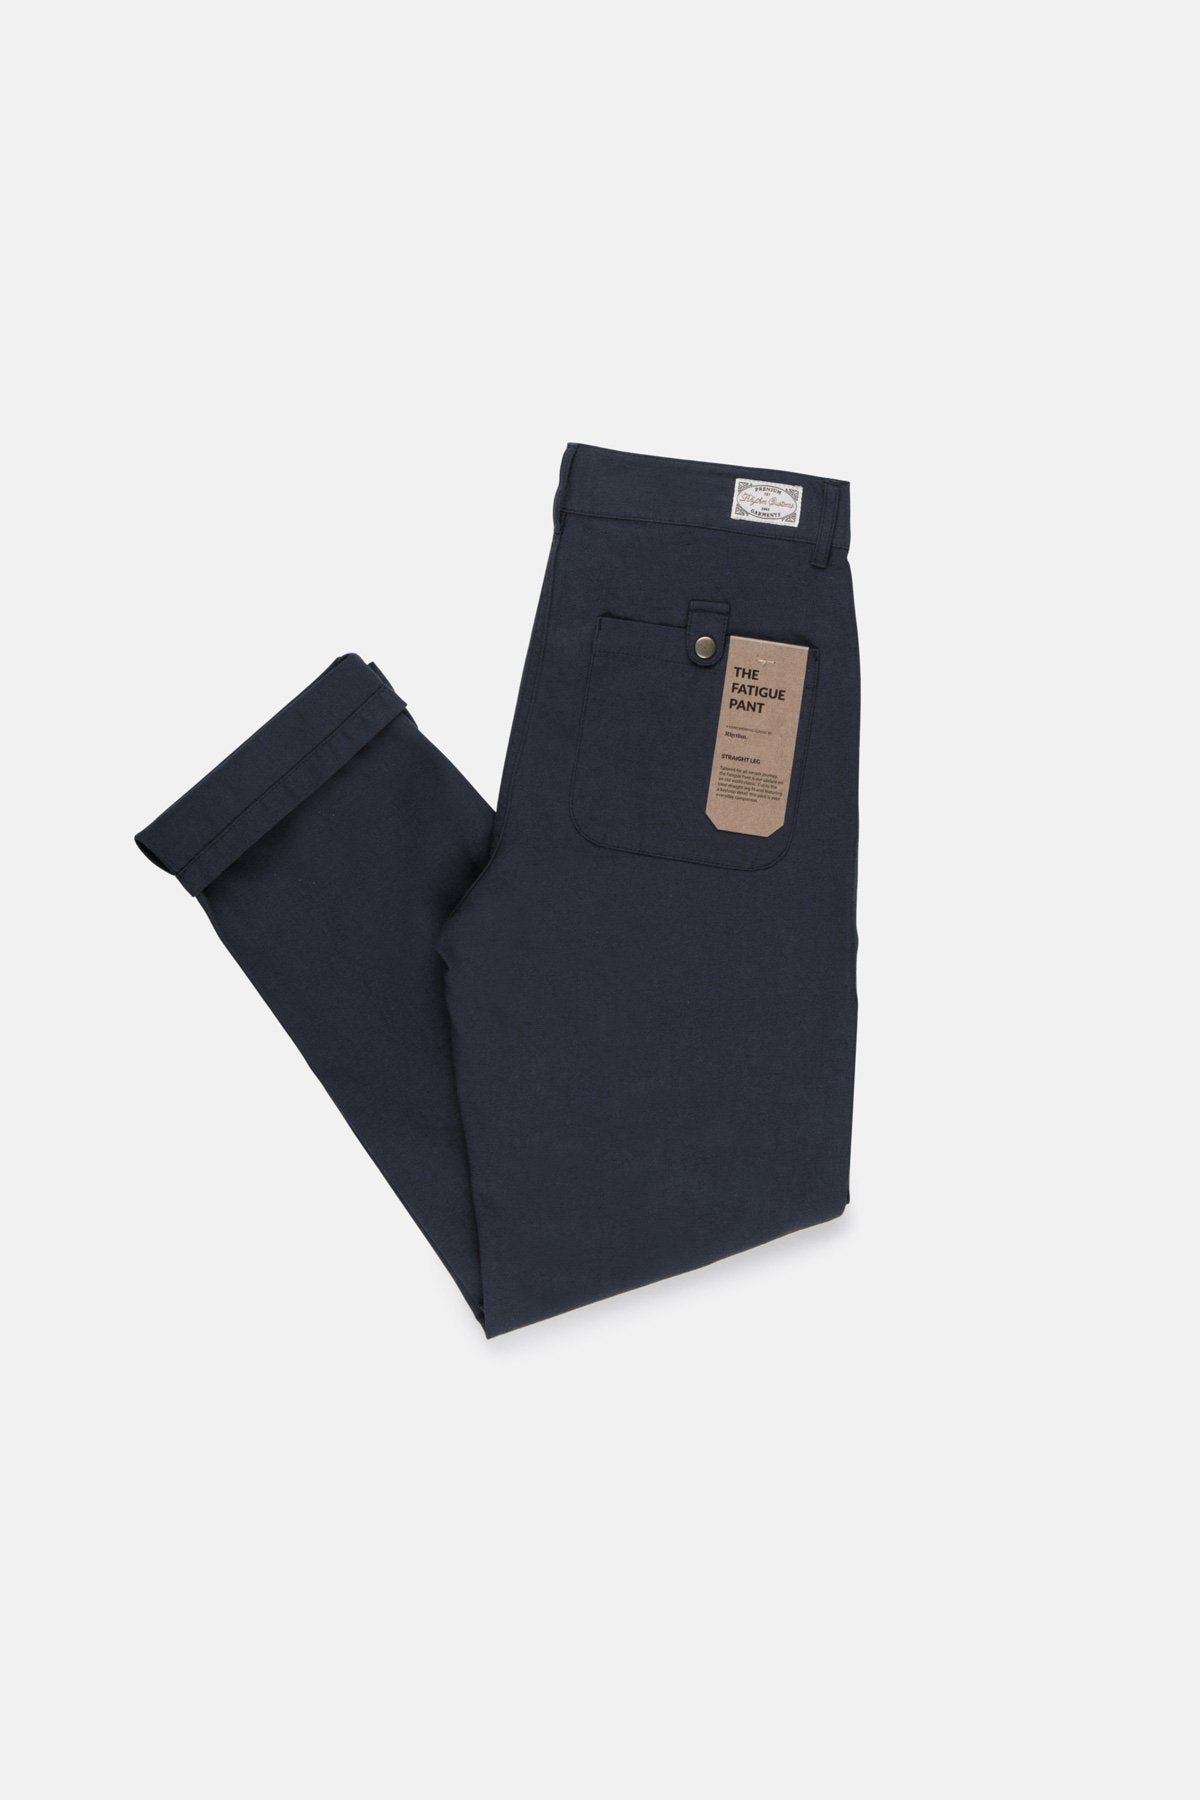 Fatigue Pant- Navy